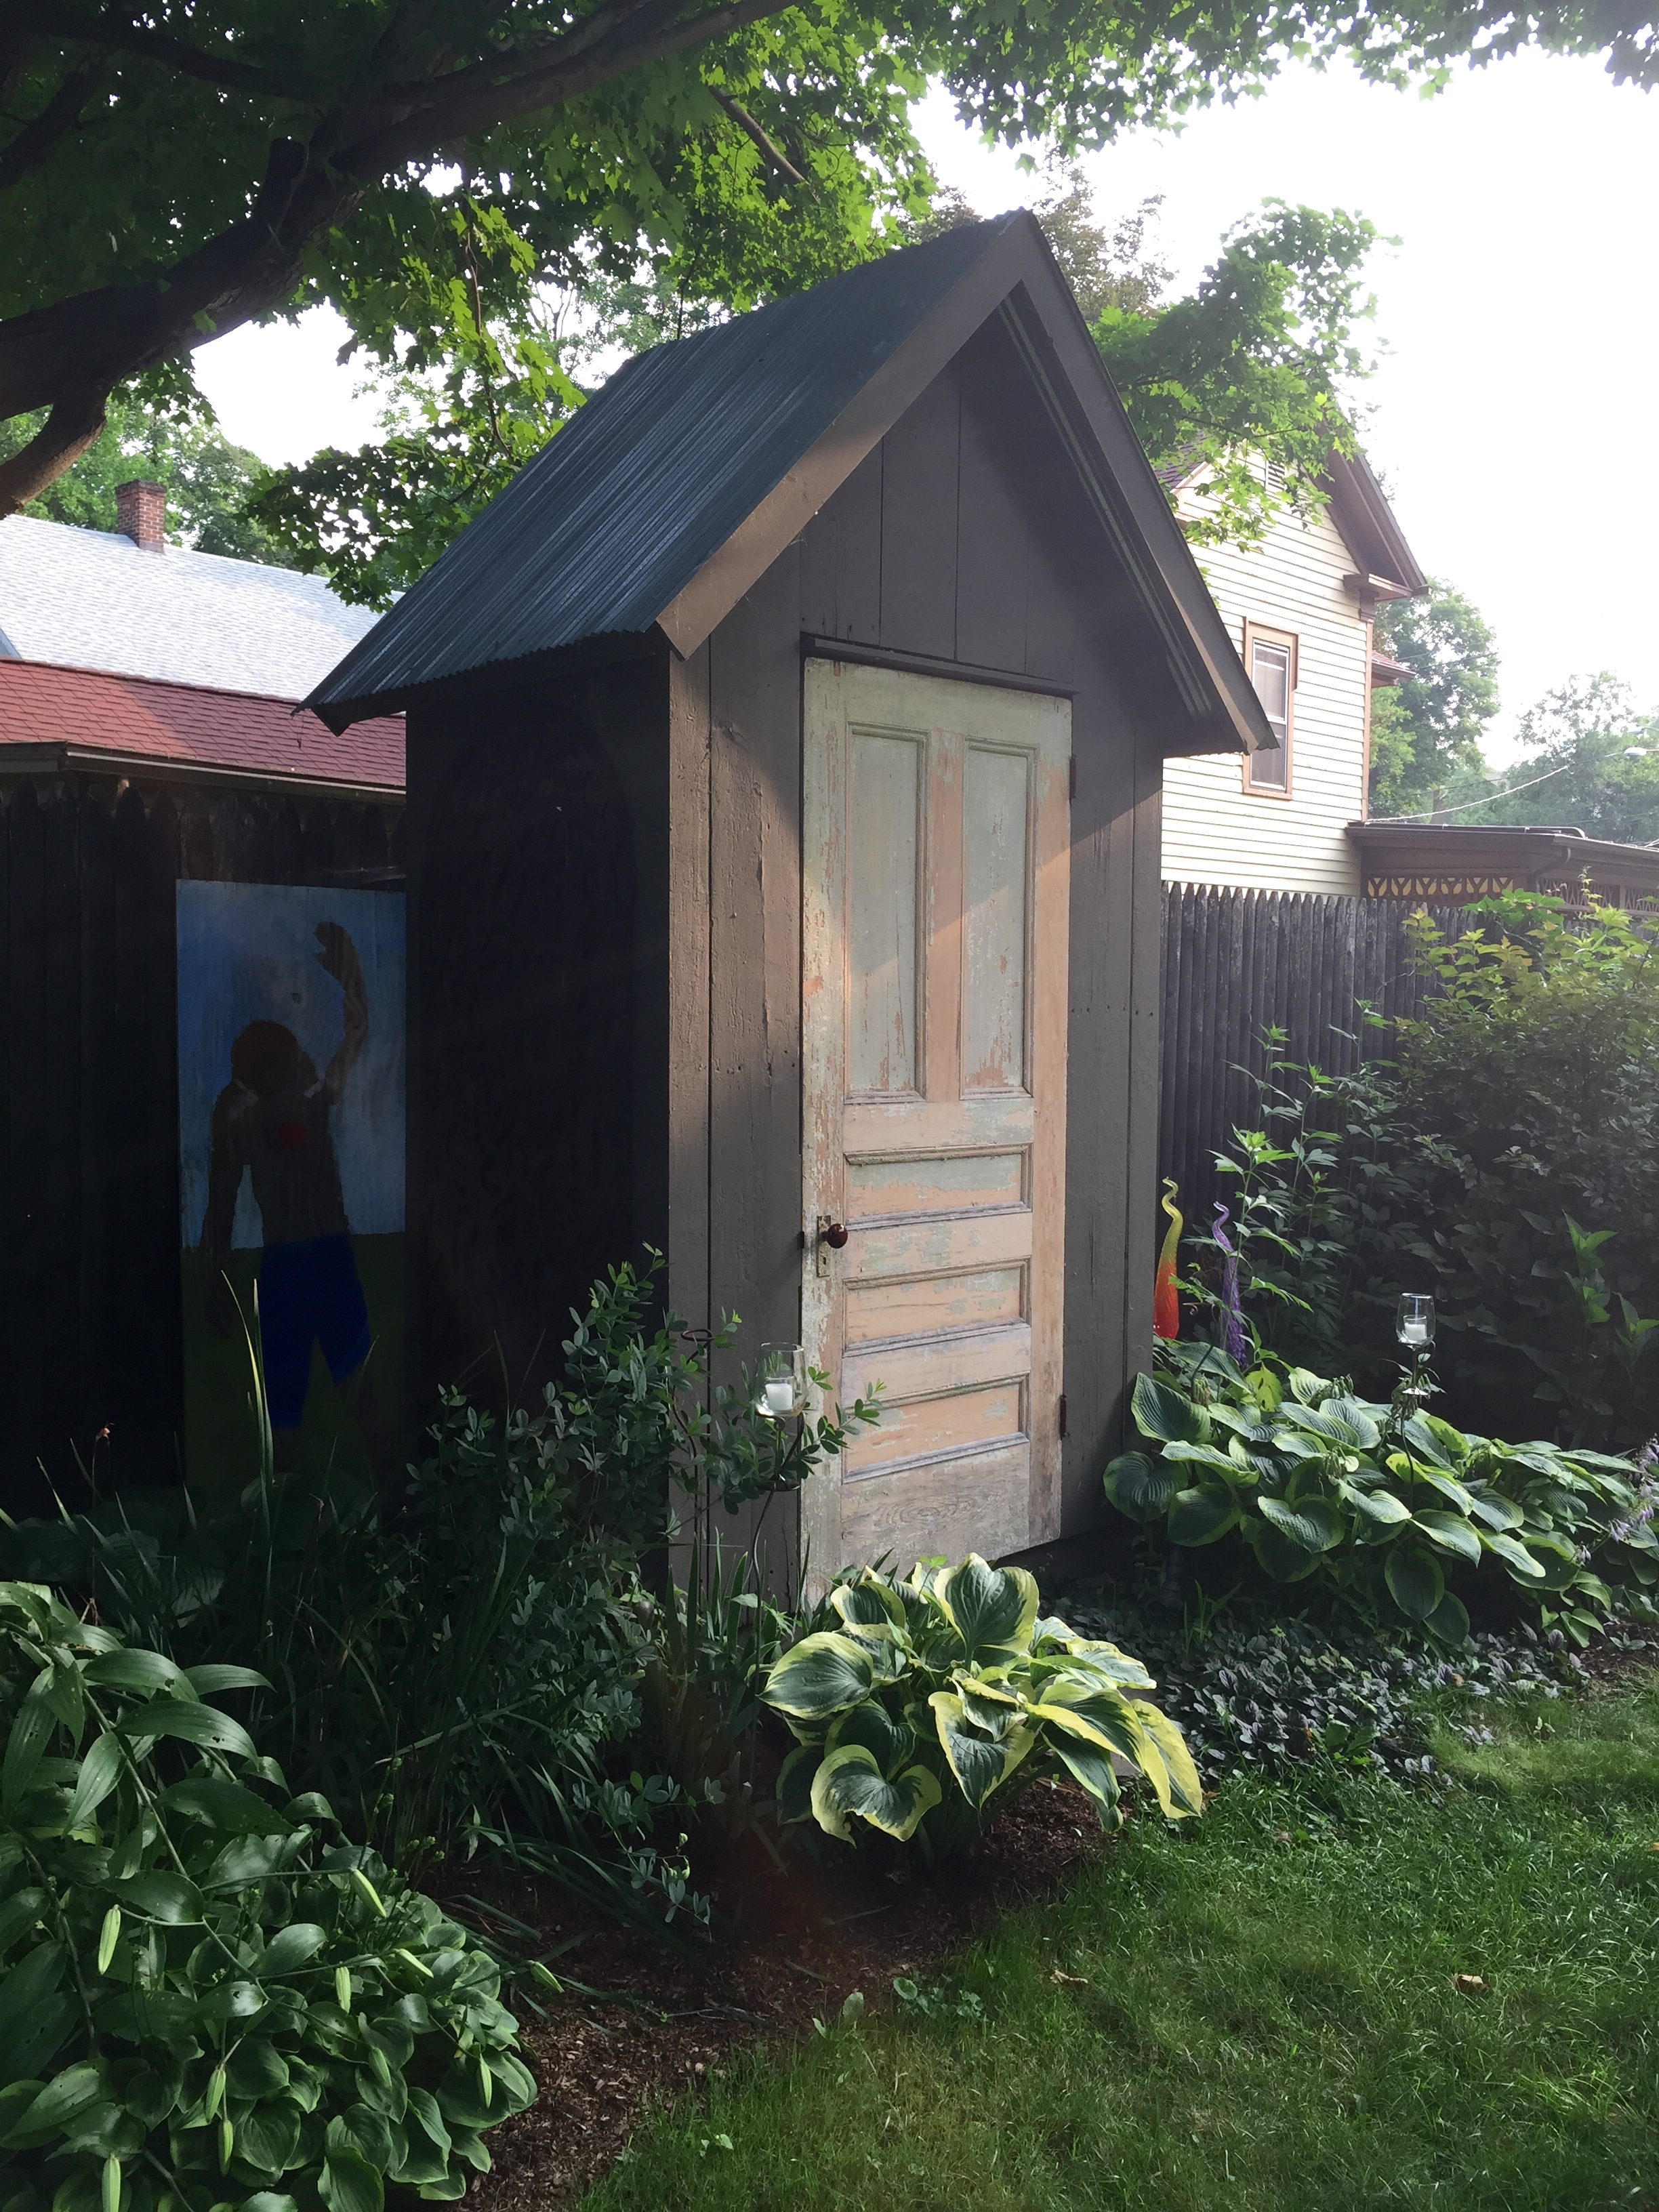 It's not an outhouse!!